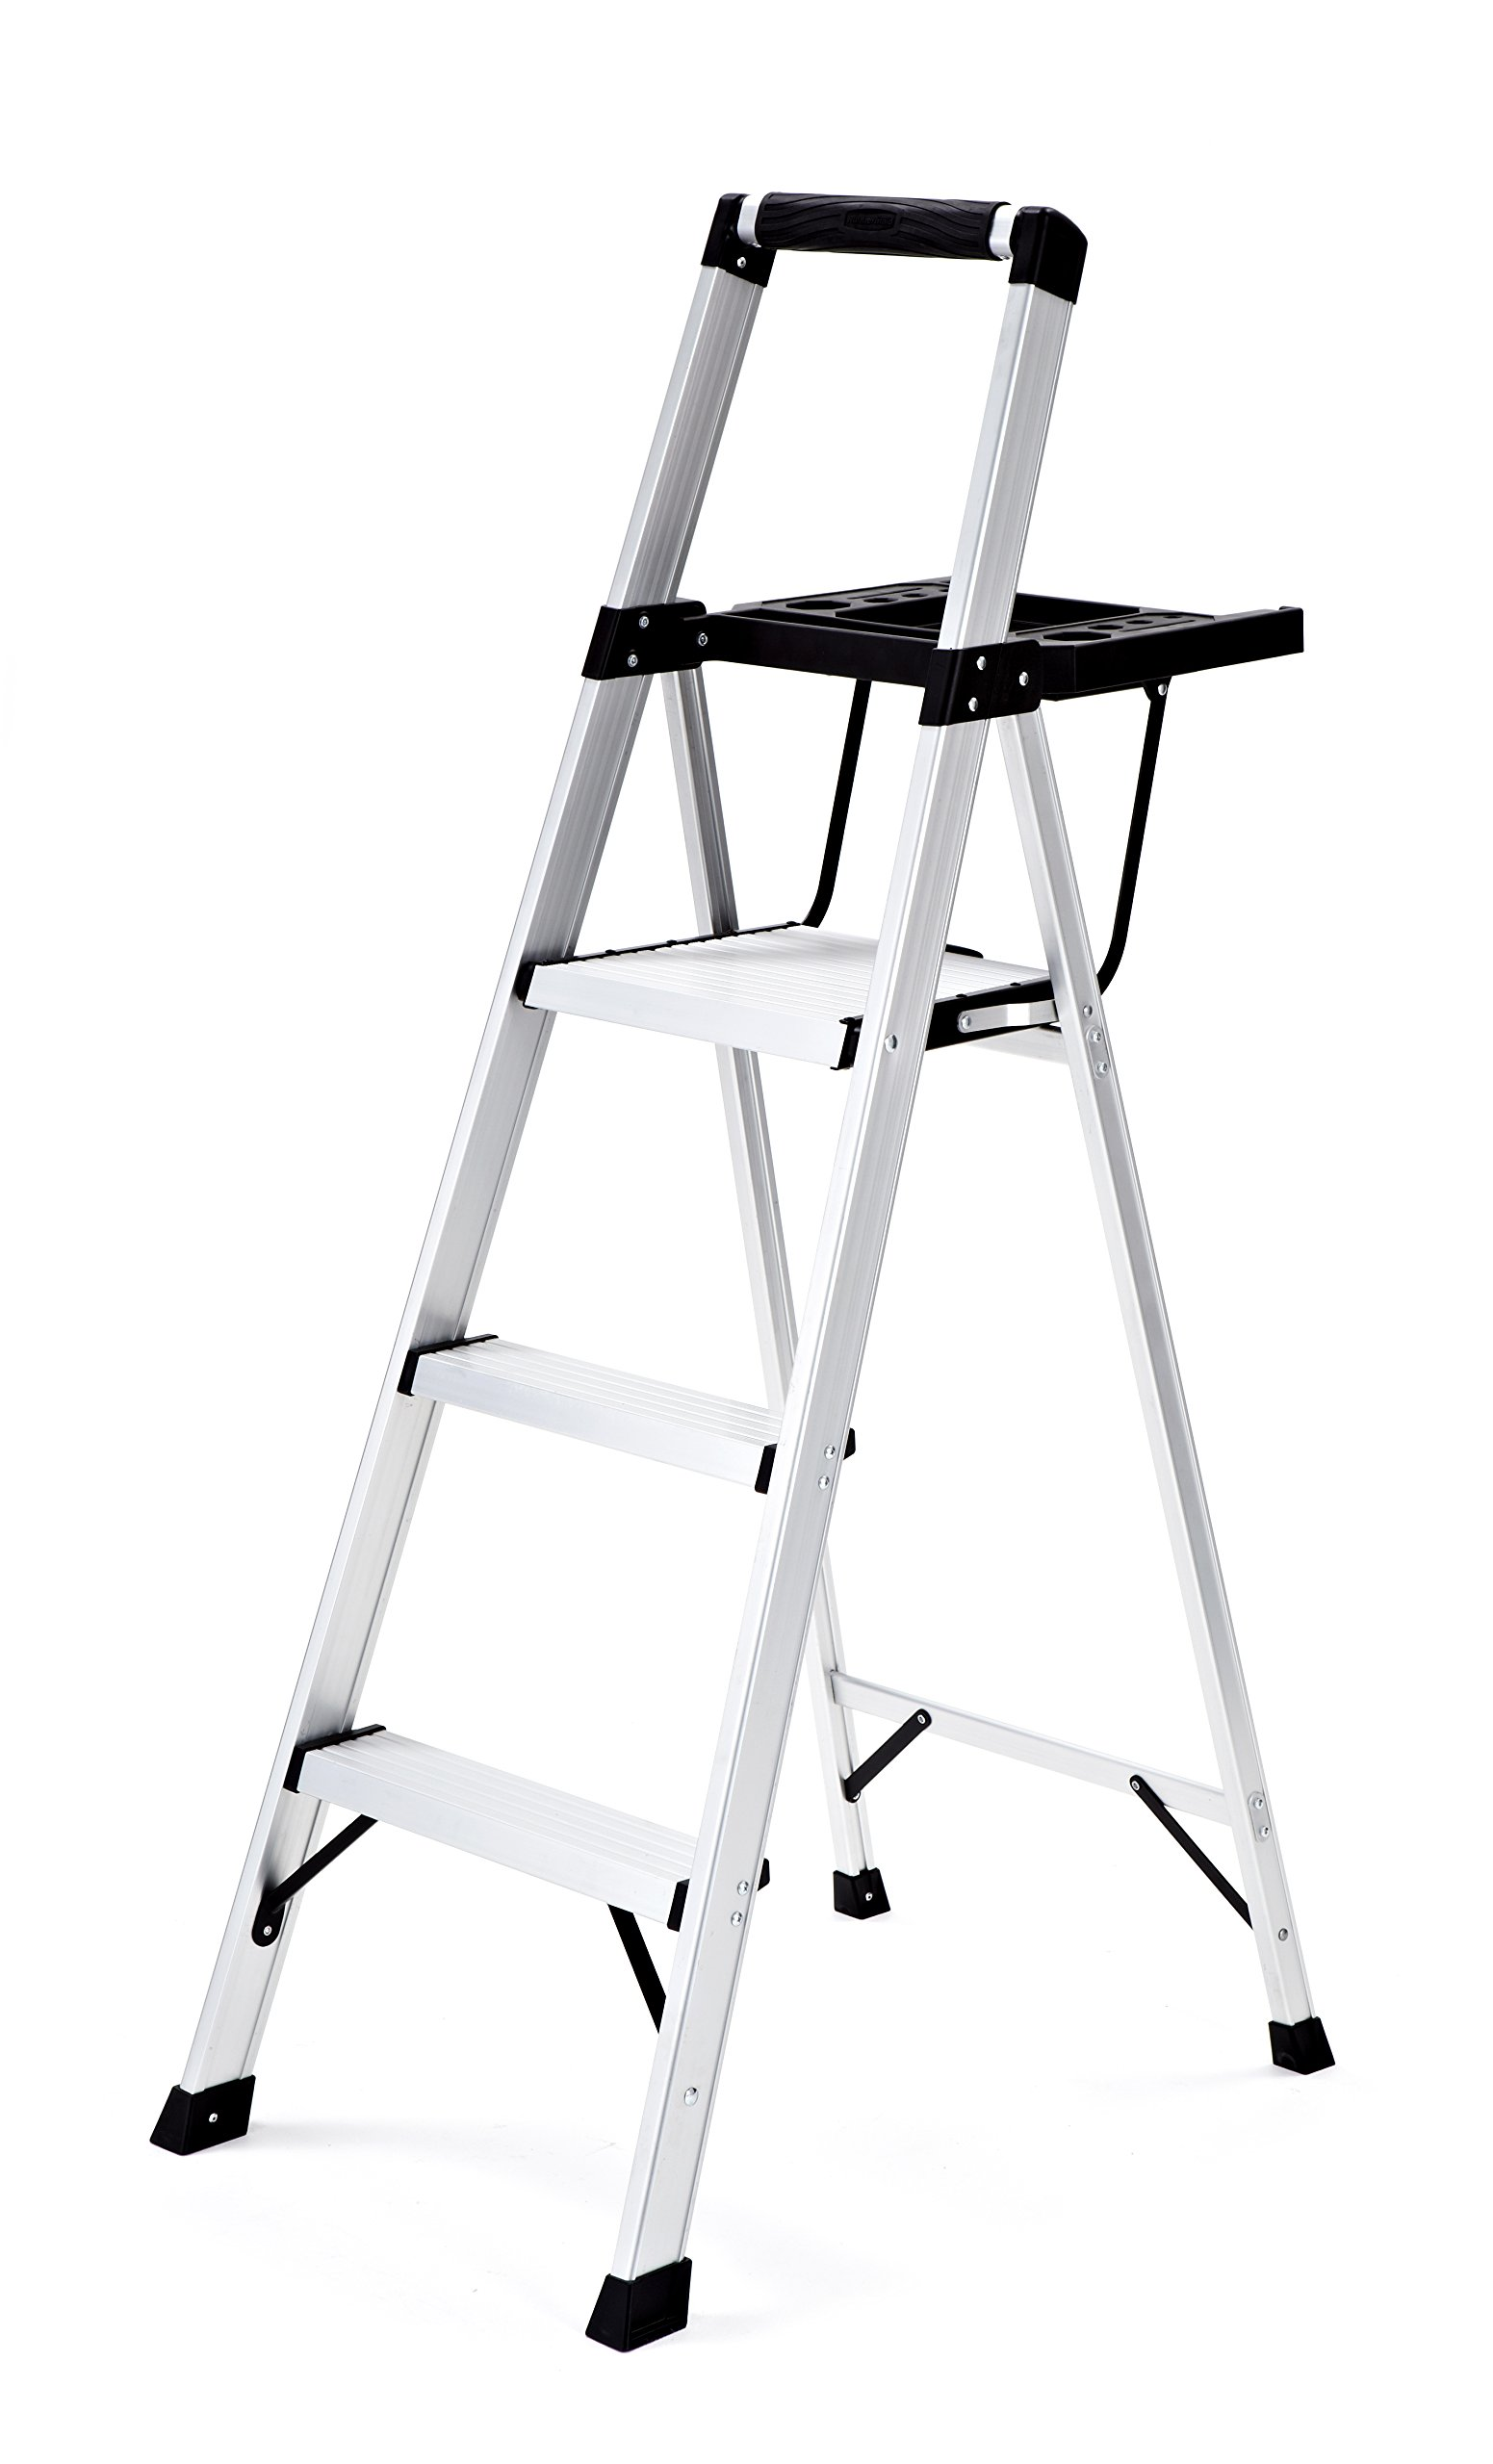 Rubbermaid RMA-3XST 3-Step Lightweight Aluminum Step Stool with Oversized Project Tray